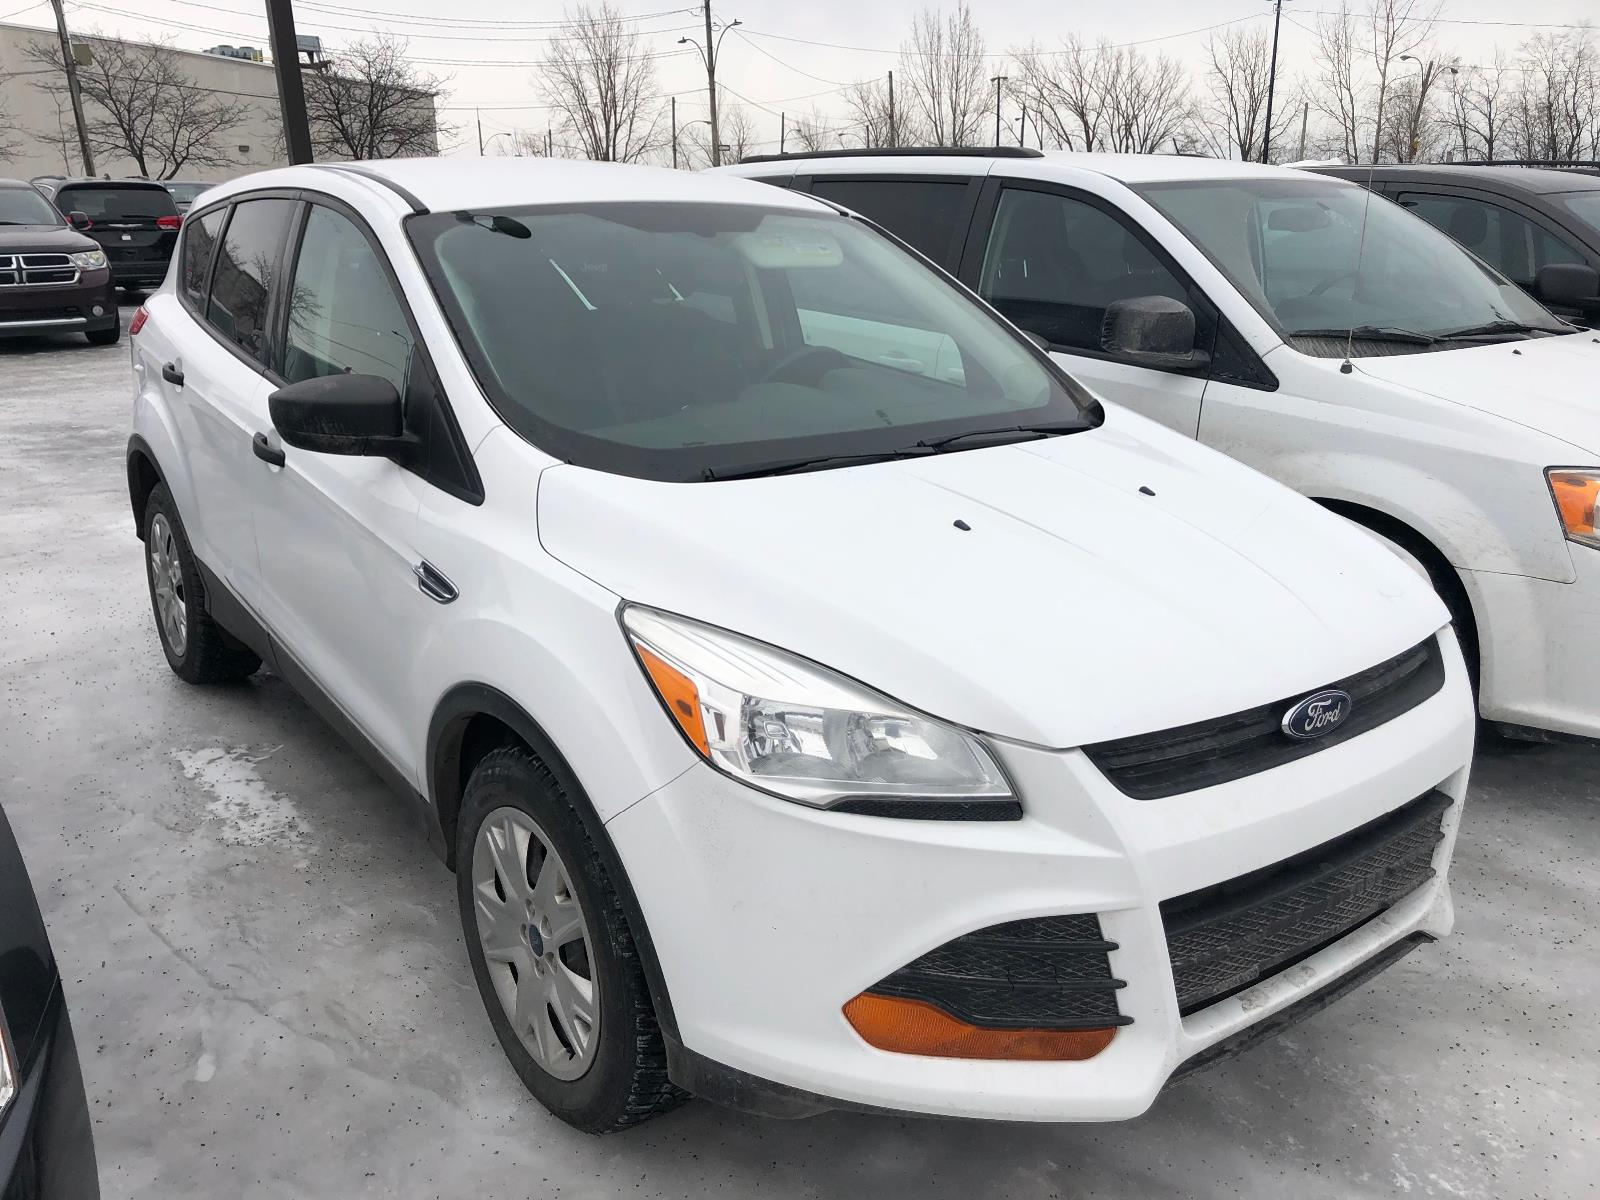 Ford Escape 2013 S+TRES BAS MILLAGES+A/C+GR.ELEC+WOW! #UD5108